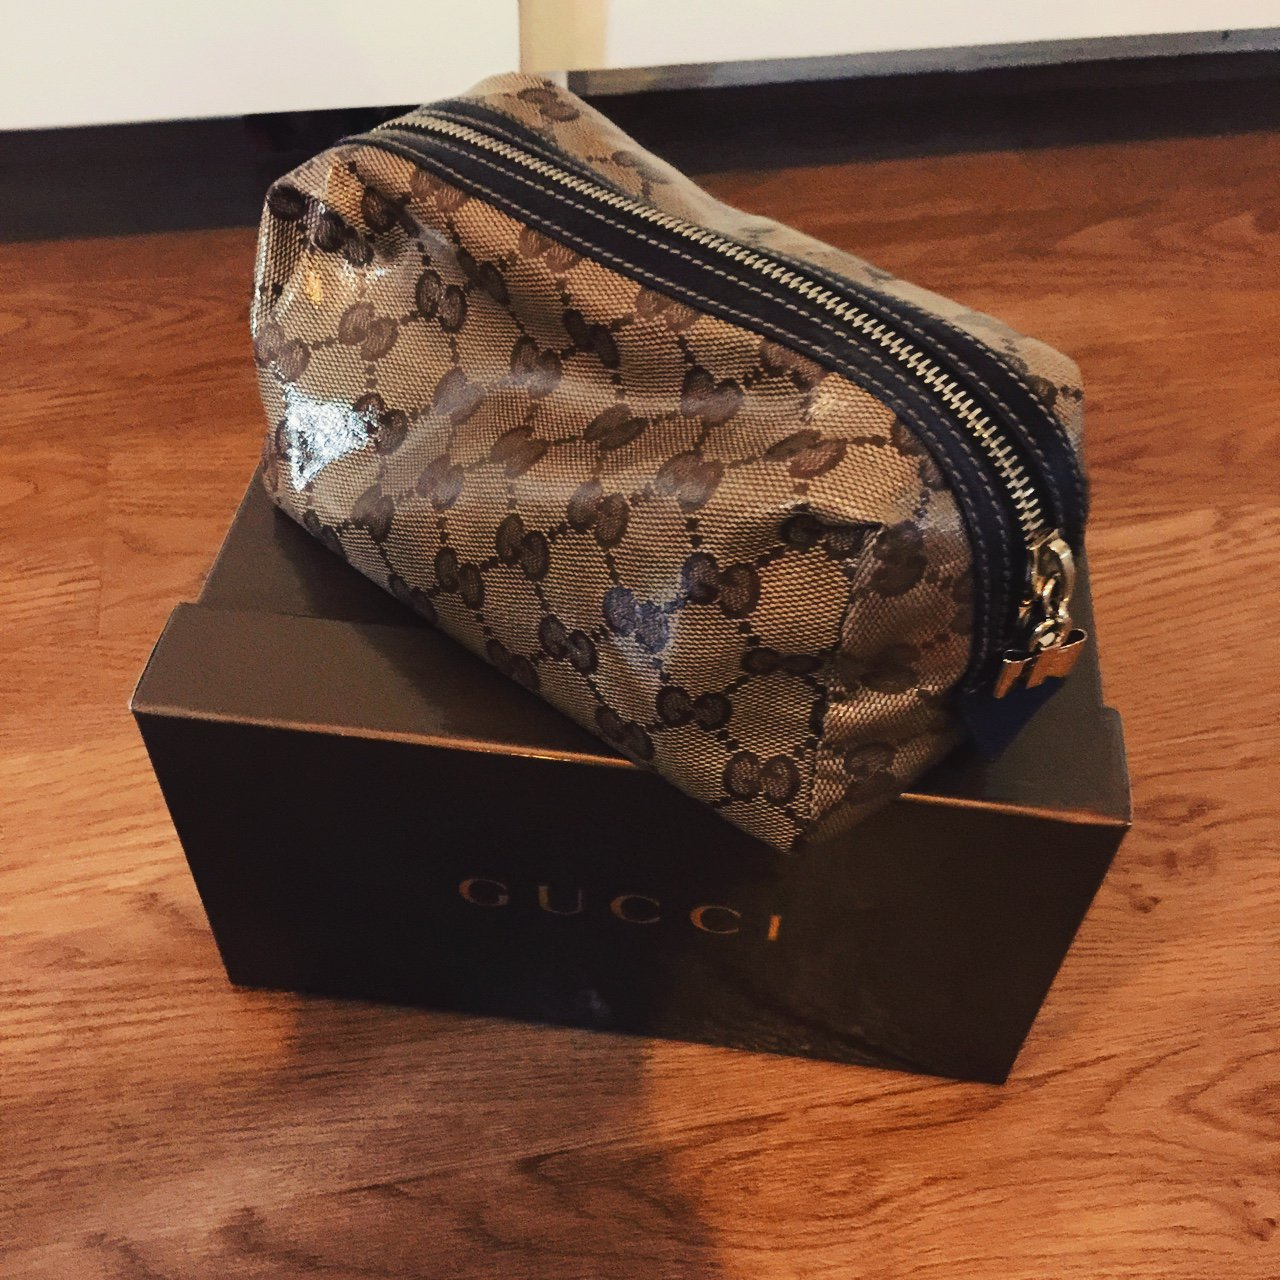 49928d1acec3 Gucci cosmetic bag Good condition Purchased from Selfridges - Depop